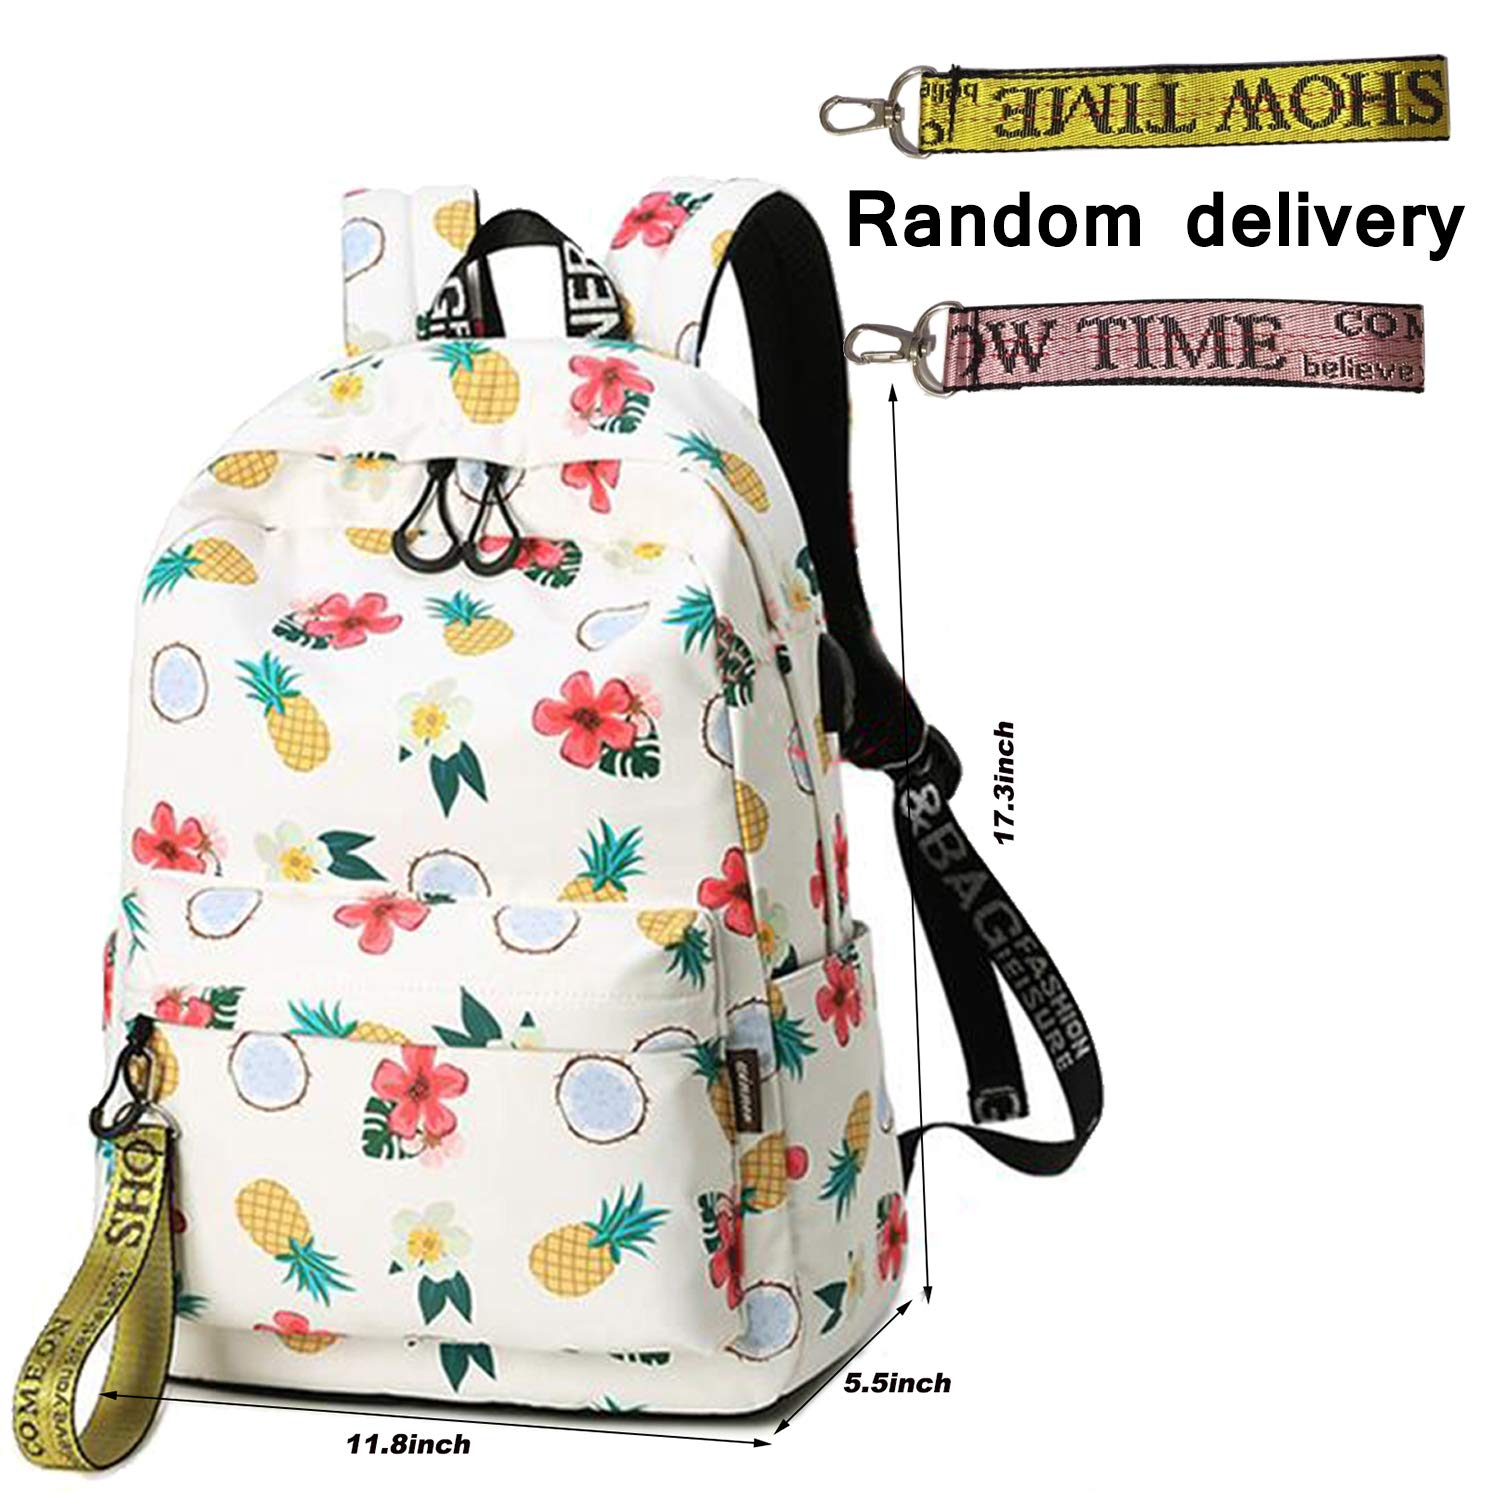 8a72f7876ae4 Amazon.com  School Backpack Teen Girls Bookbag Cute School Bag College  Laptop Backpack with USB Charging Port Travel Rucksack for Middle School  Womens  ...